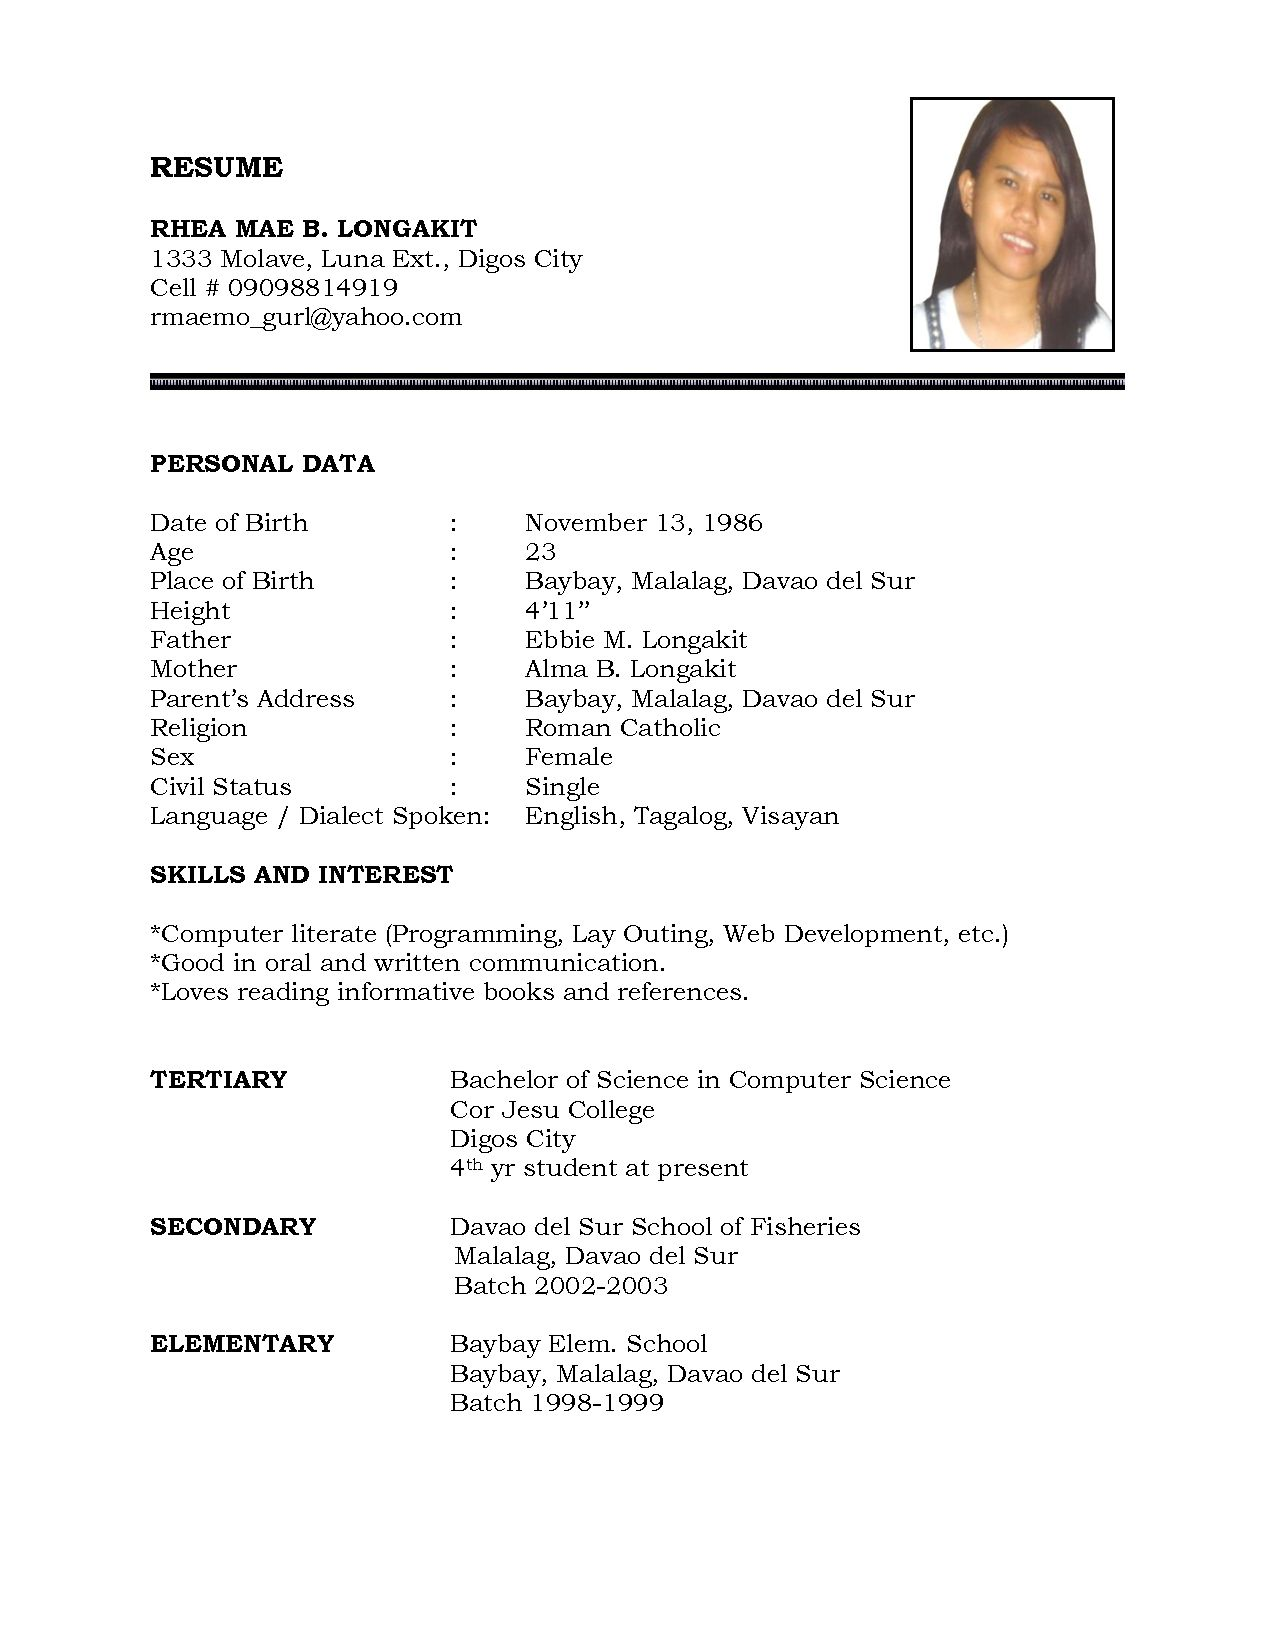 Simple Resume Examples For Jobs Resume Sample